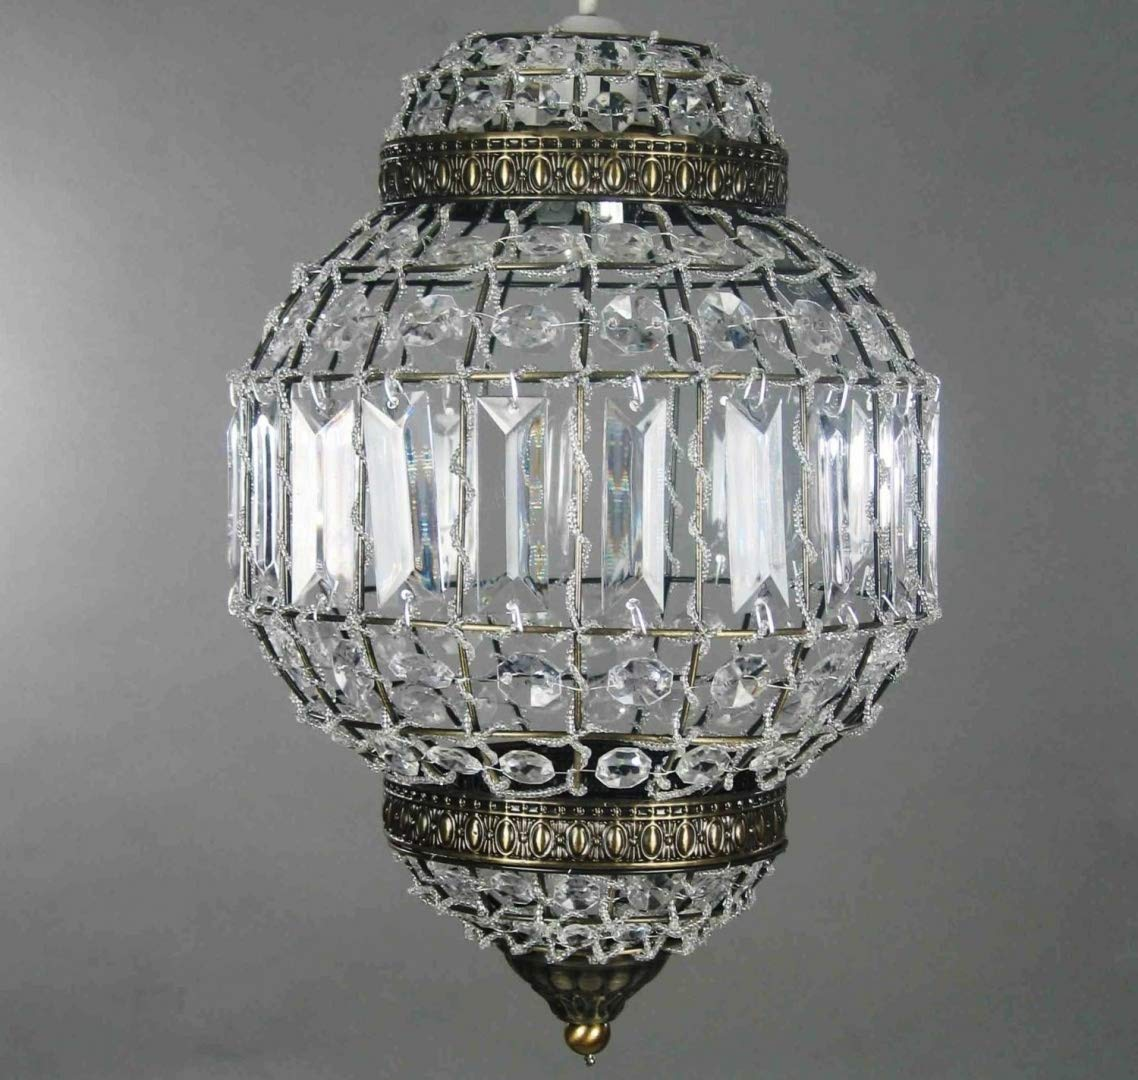 morrocan style lighting. Classic Morrocan Lantern Style Antique Brass Clear Acrylic Ceiling Light Shade Easy Fit Pendant Lighting